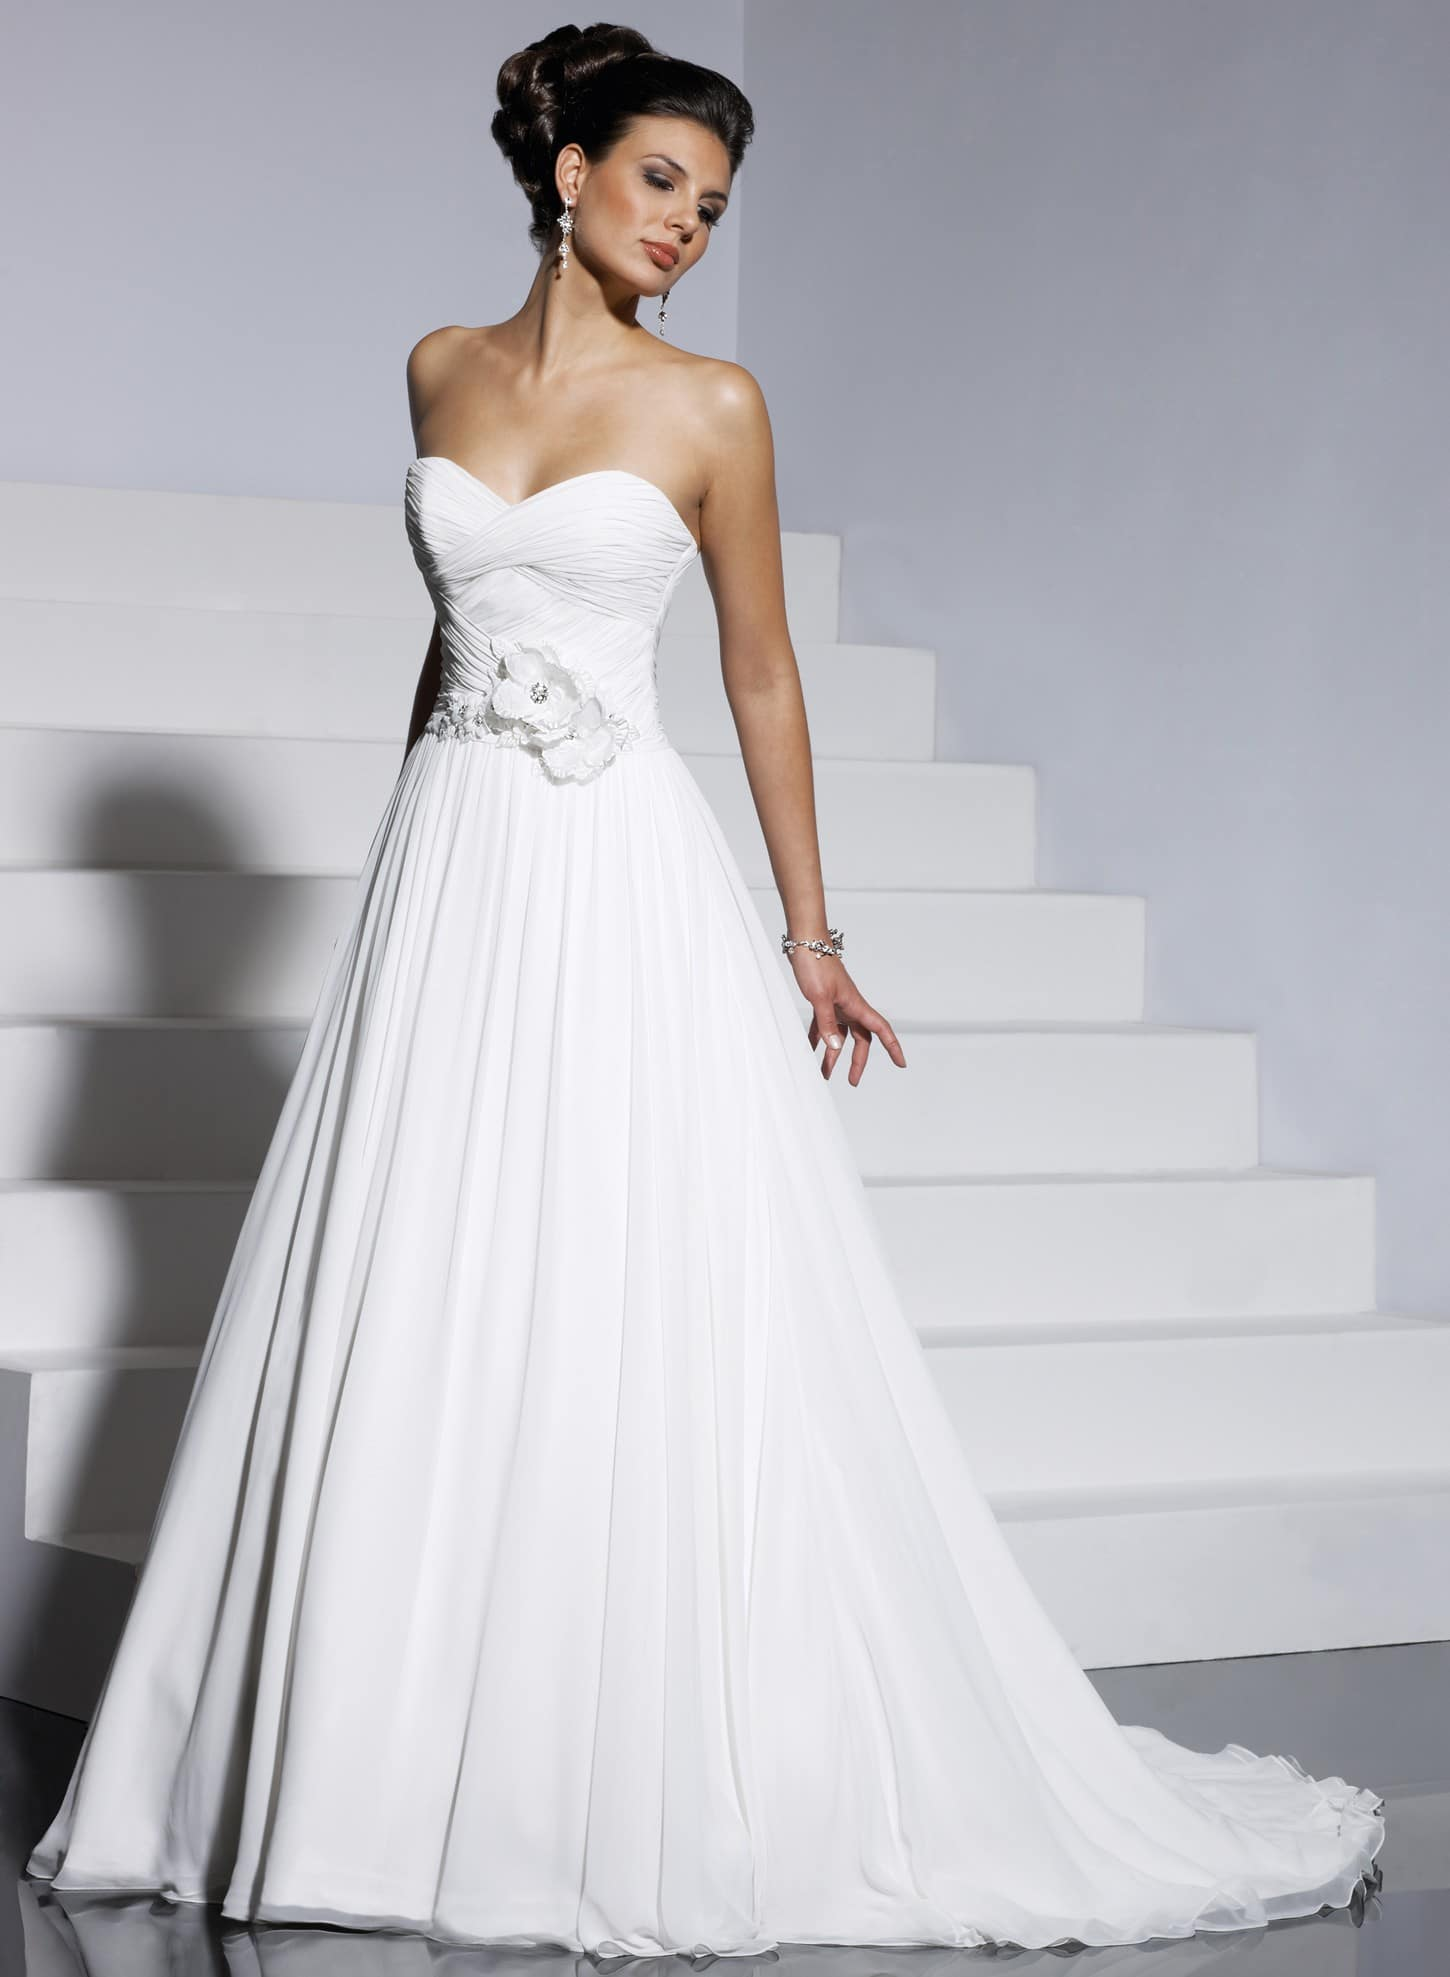 The A-Line Gown